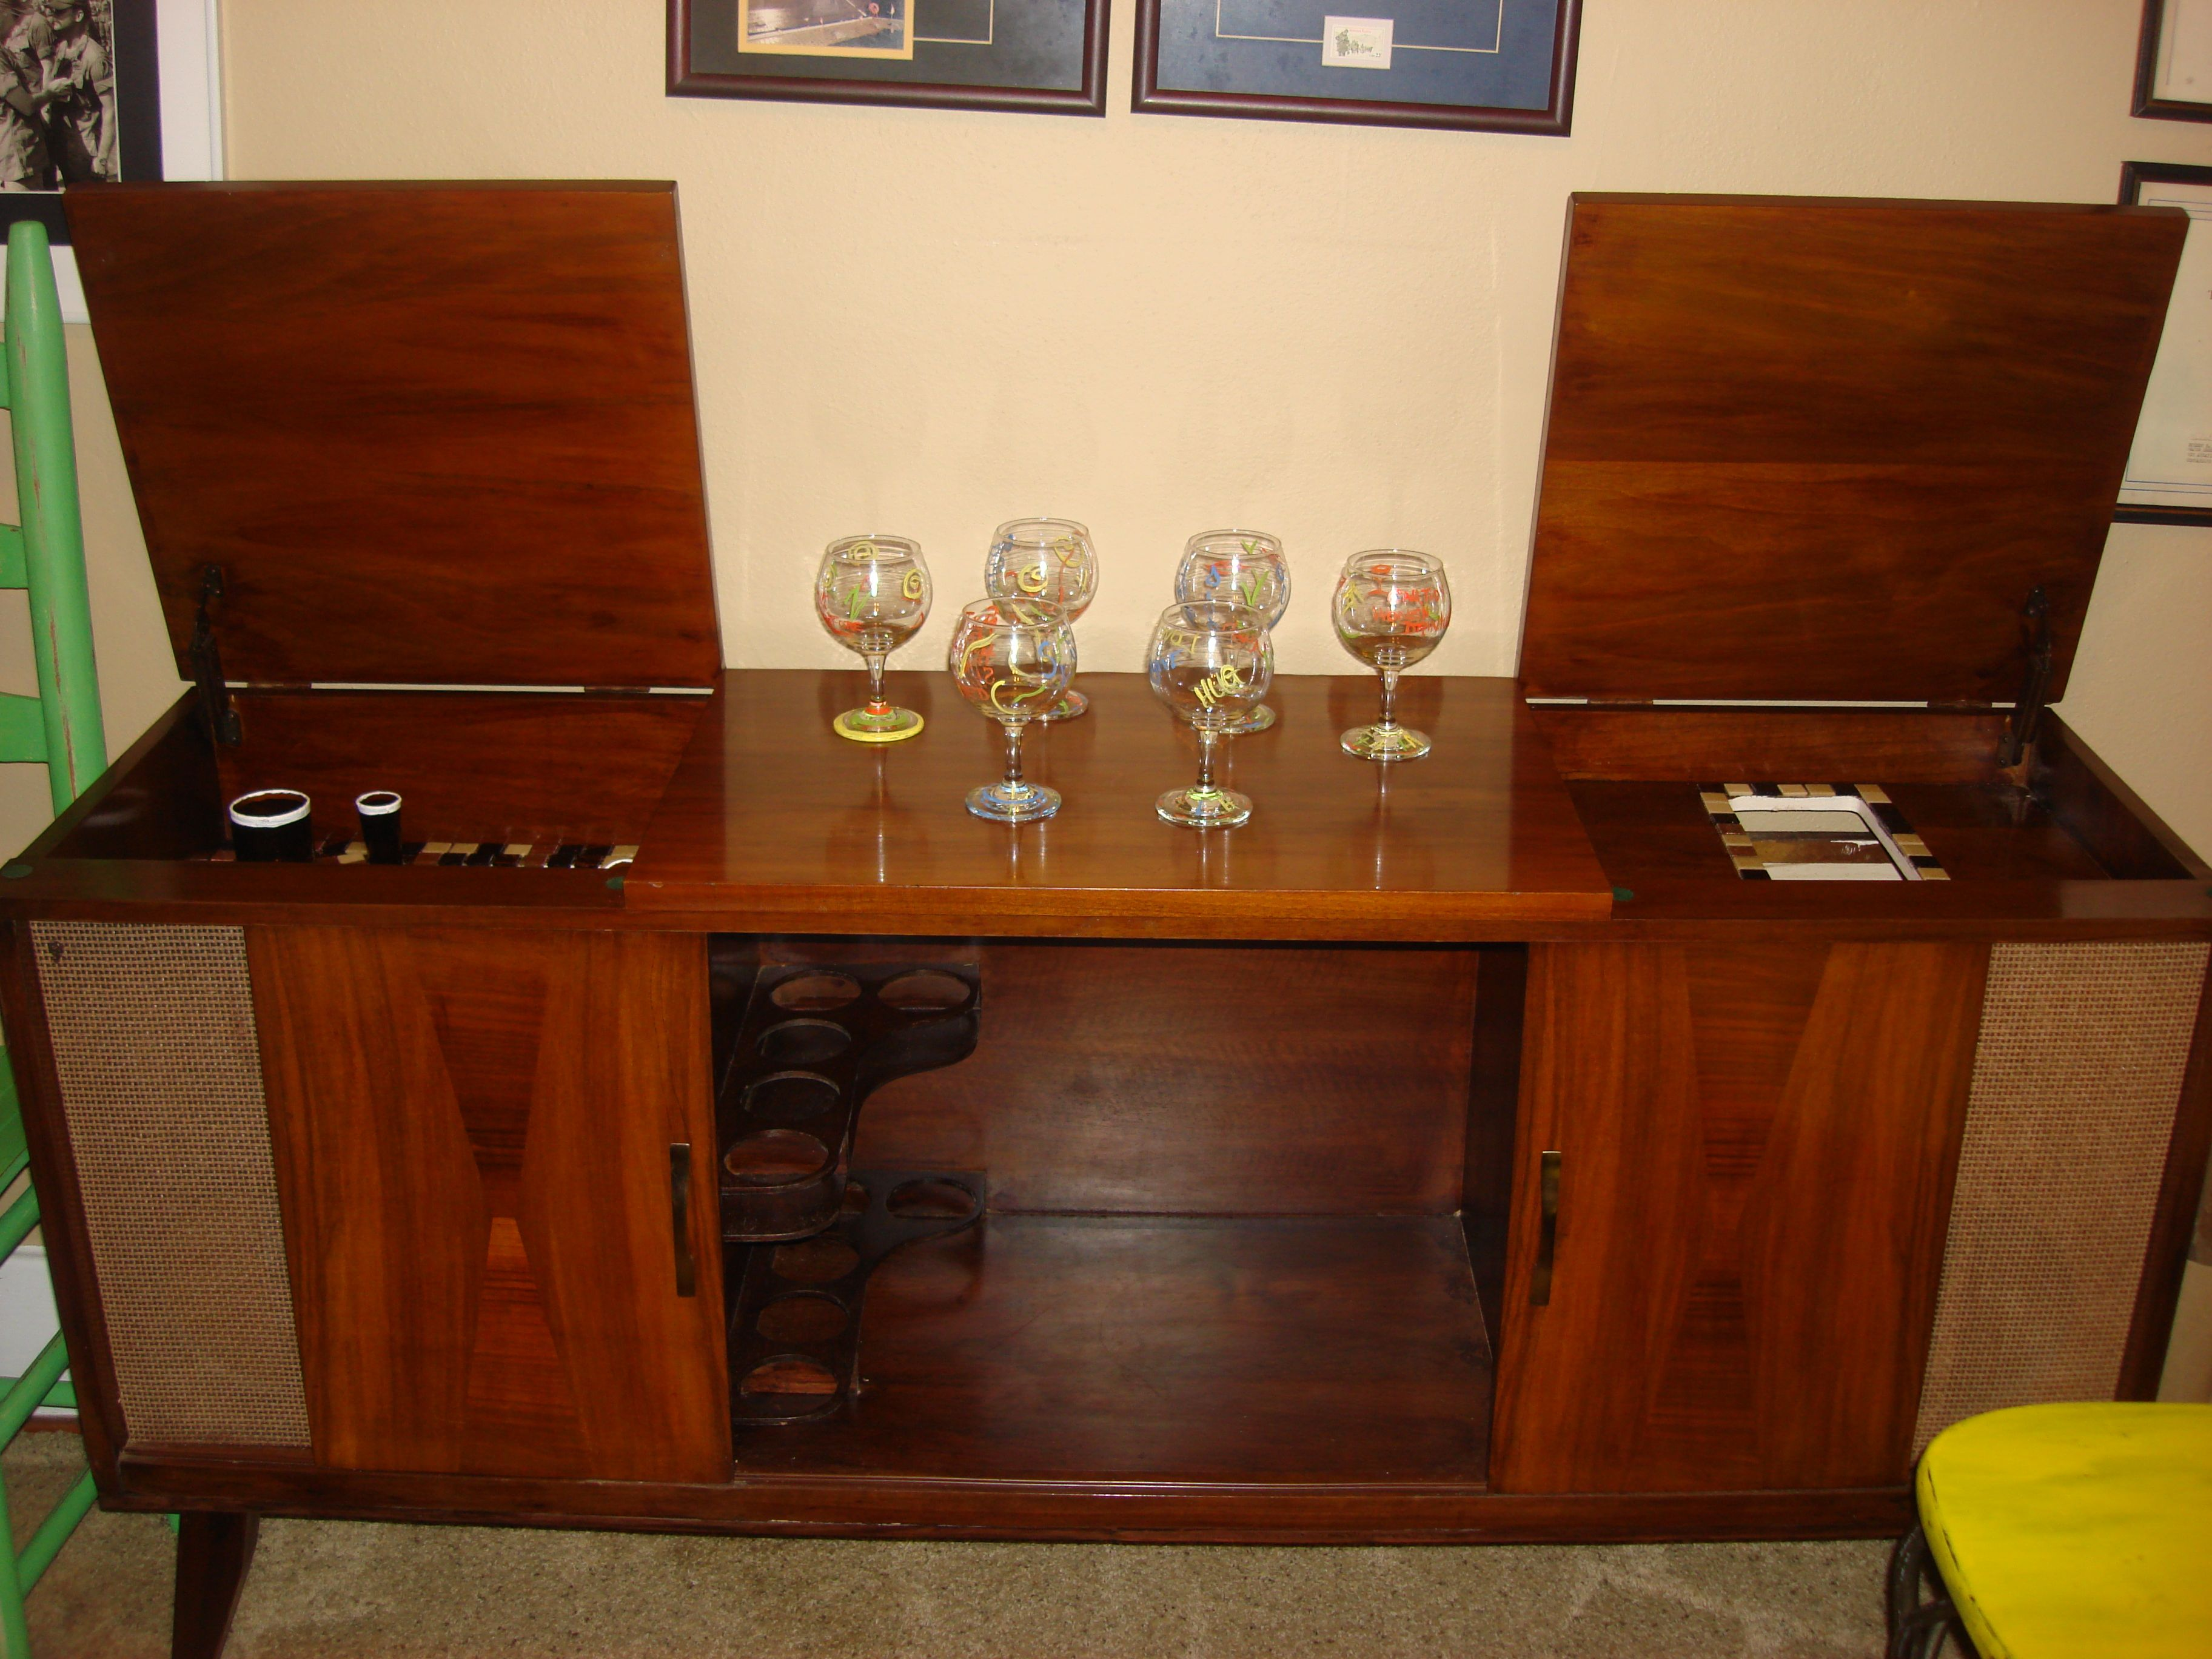 A 1960u0027s Console Stereo Re Purposed Into A Bar. Visit Me On Facebook.